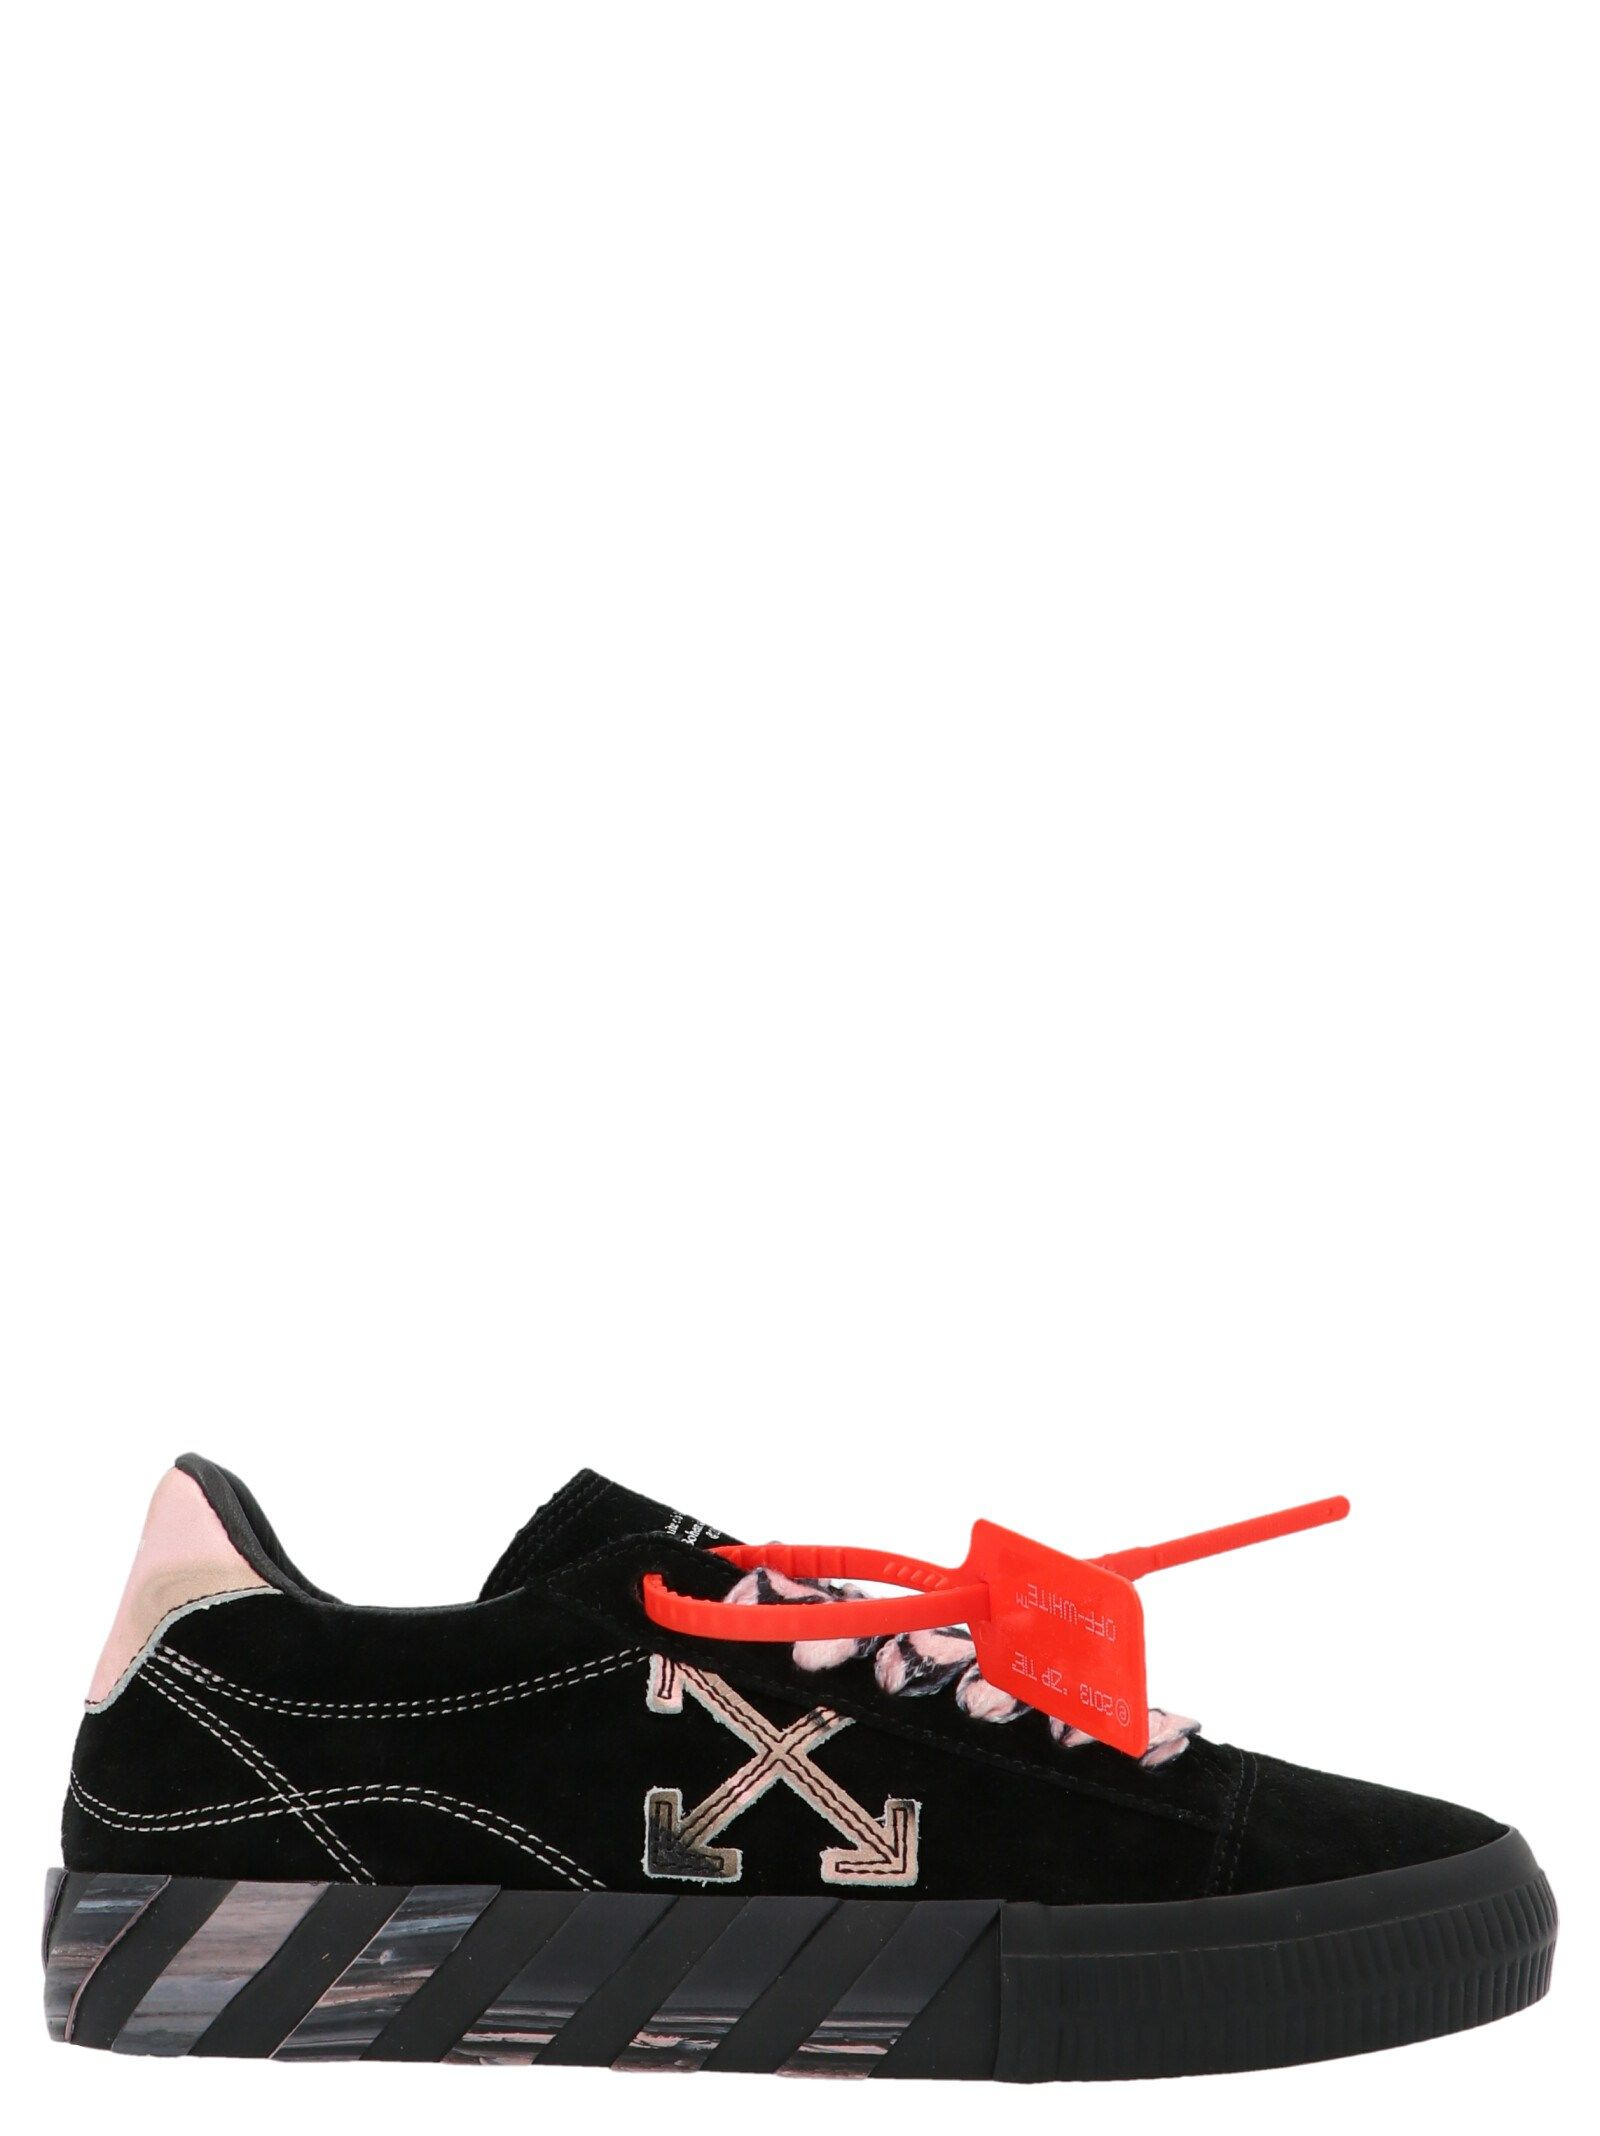 Off-White Leathers OFF-WHITE WOMEN'S OWIA178R21LEA0011030 BLACK OTHER MATERIALS SNEAKERS